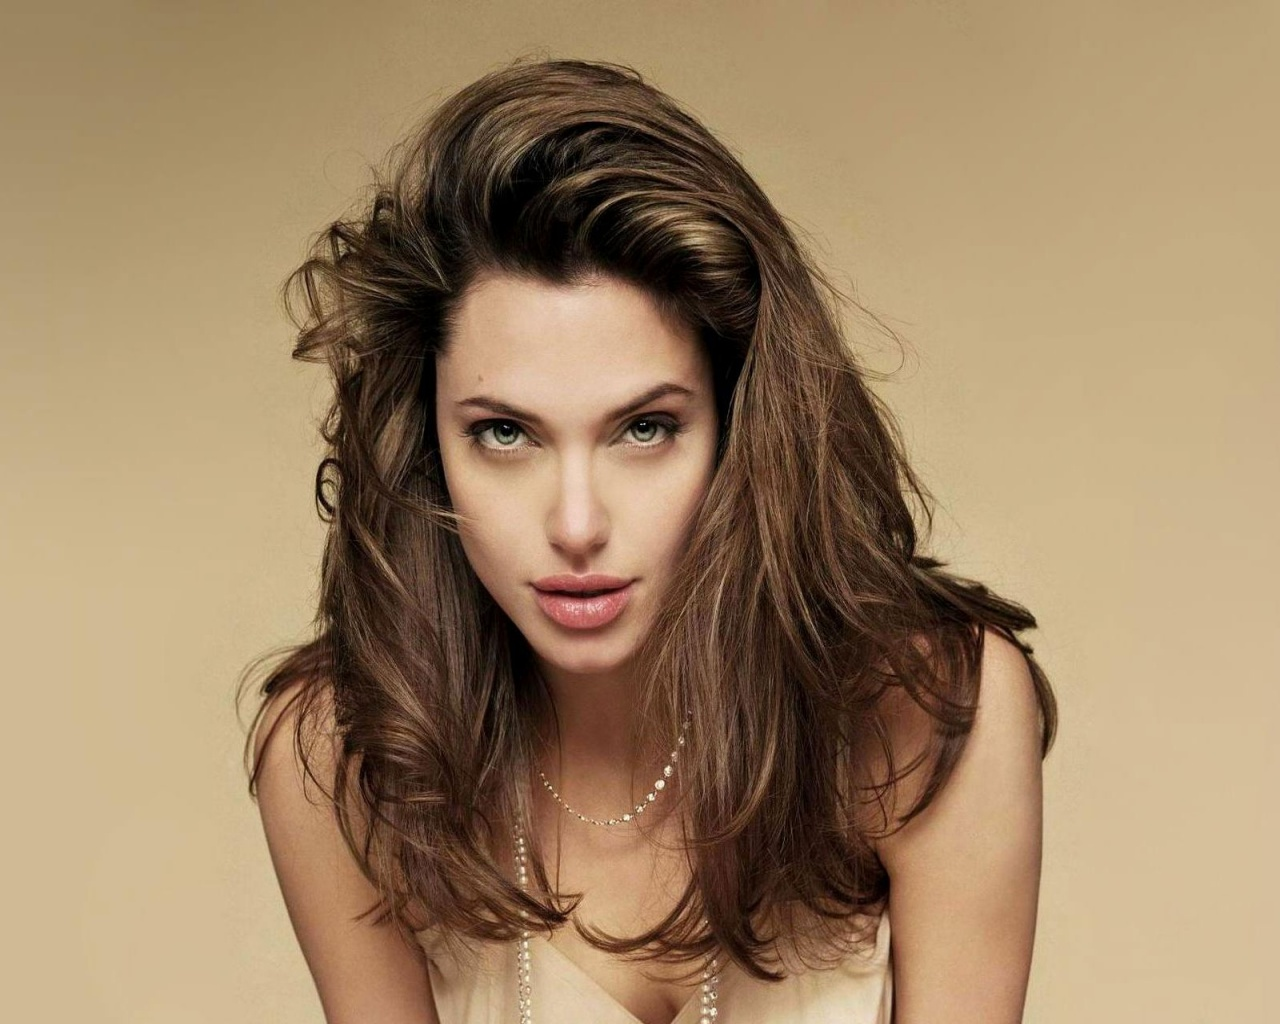 Jolie Nude Pictures Of Angelina Download Free Wallpapers High